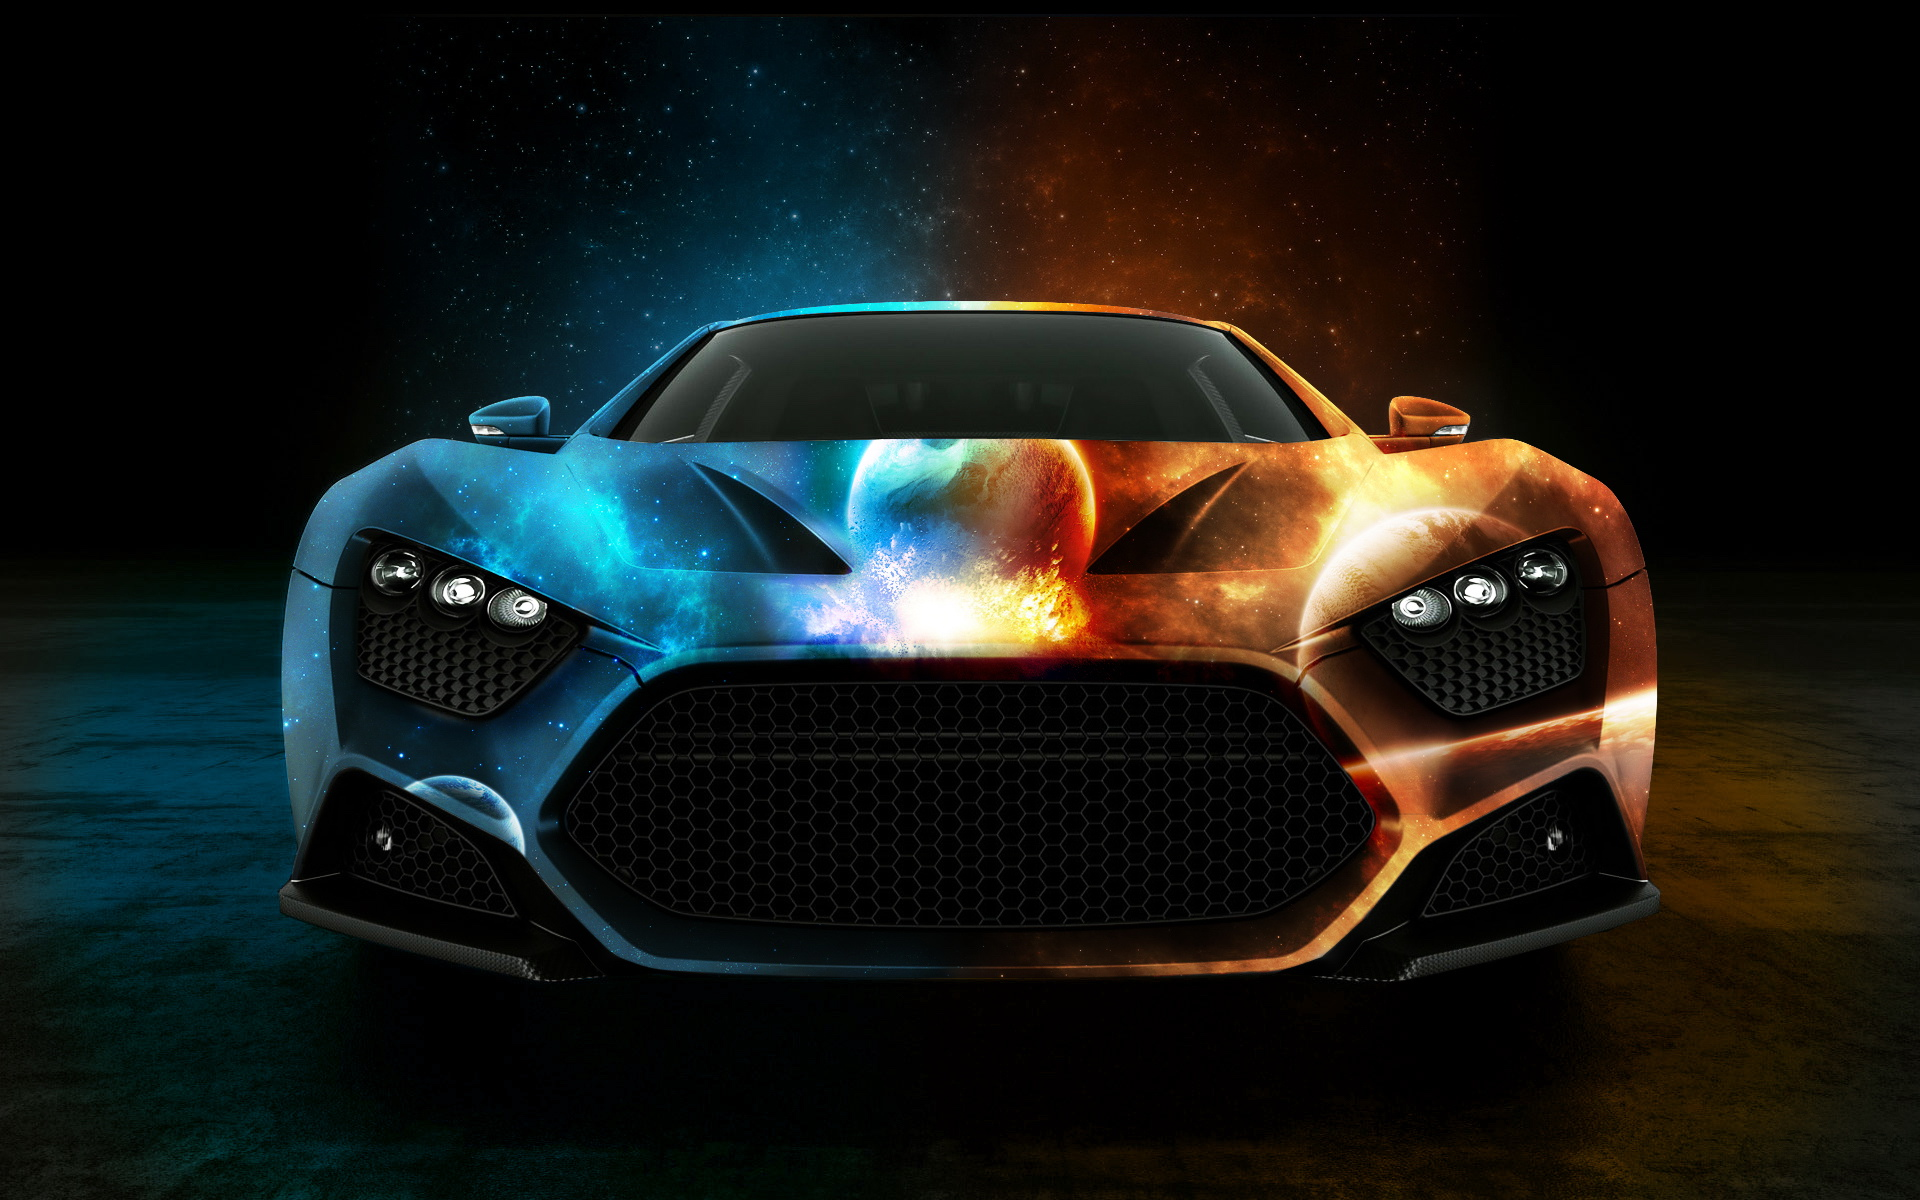 Water and Fire Car Wallpaper   iBackgroundWallpaper 1920x1200